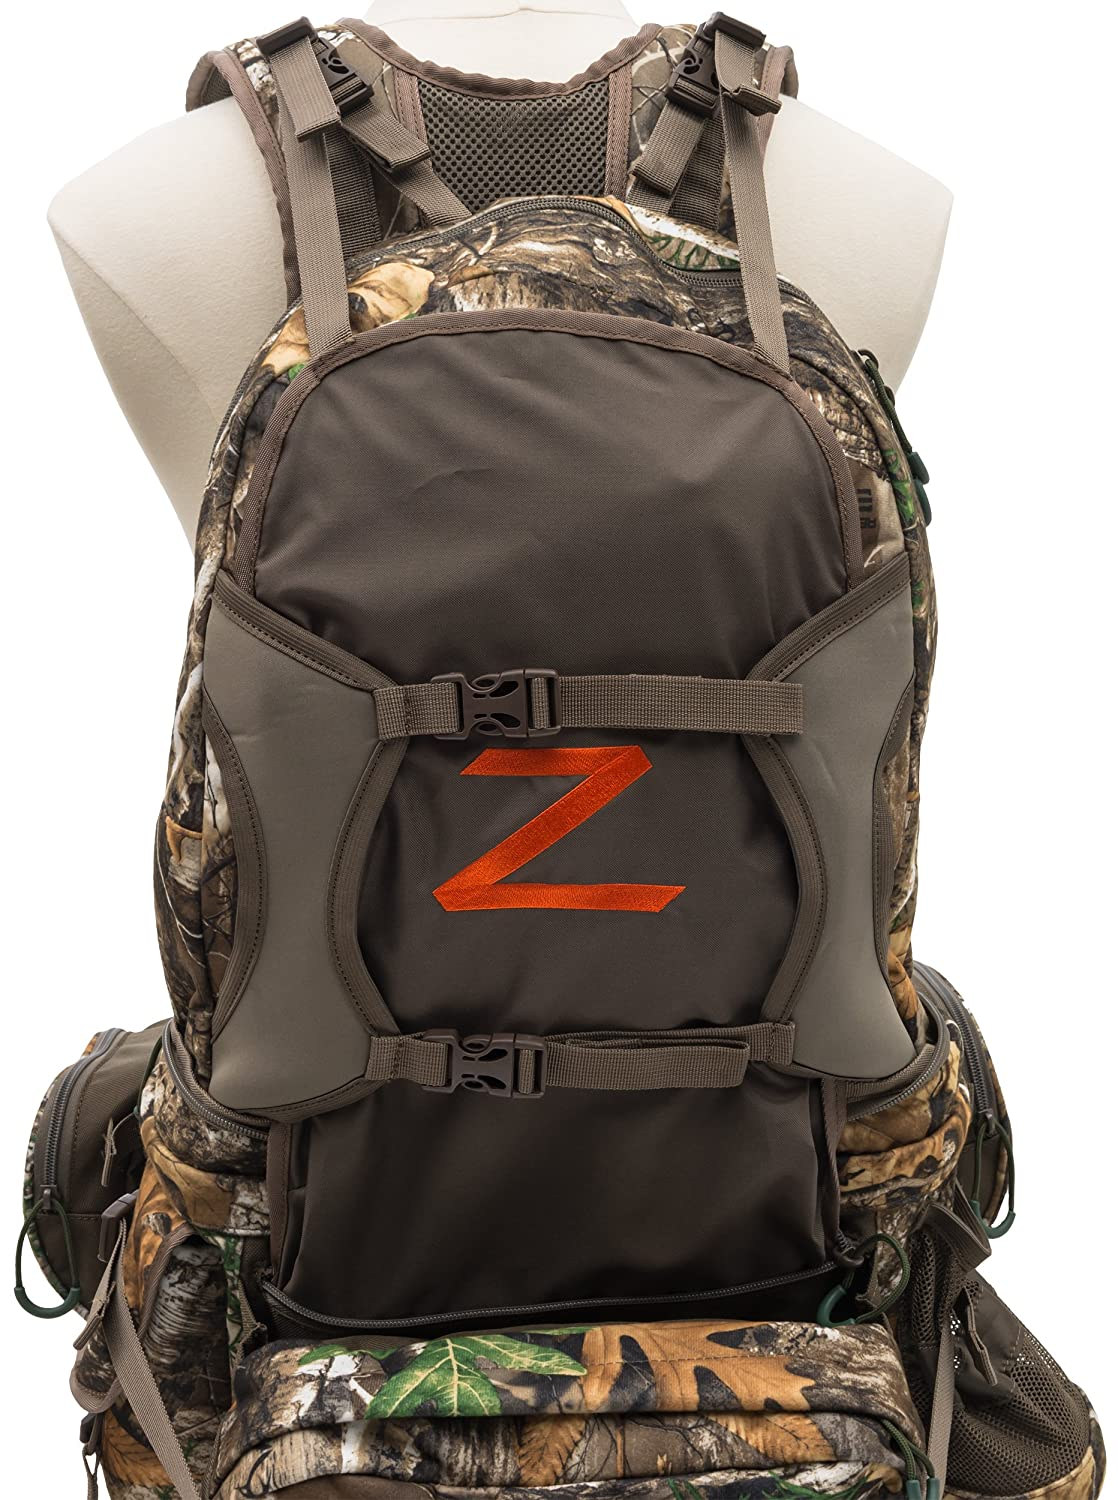 ALPS OutdoorZ Pathfinder Hunting Pack - 9411199, 2700- Cubic Inches ...